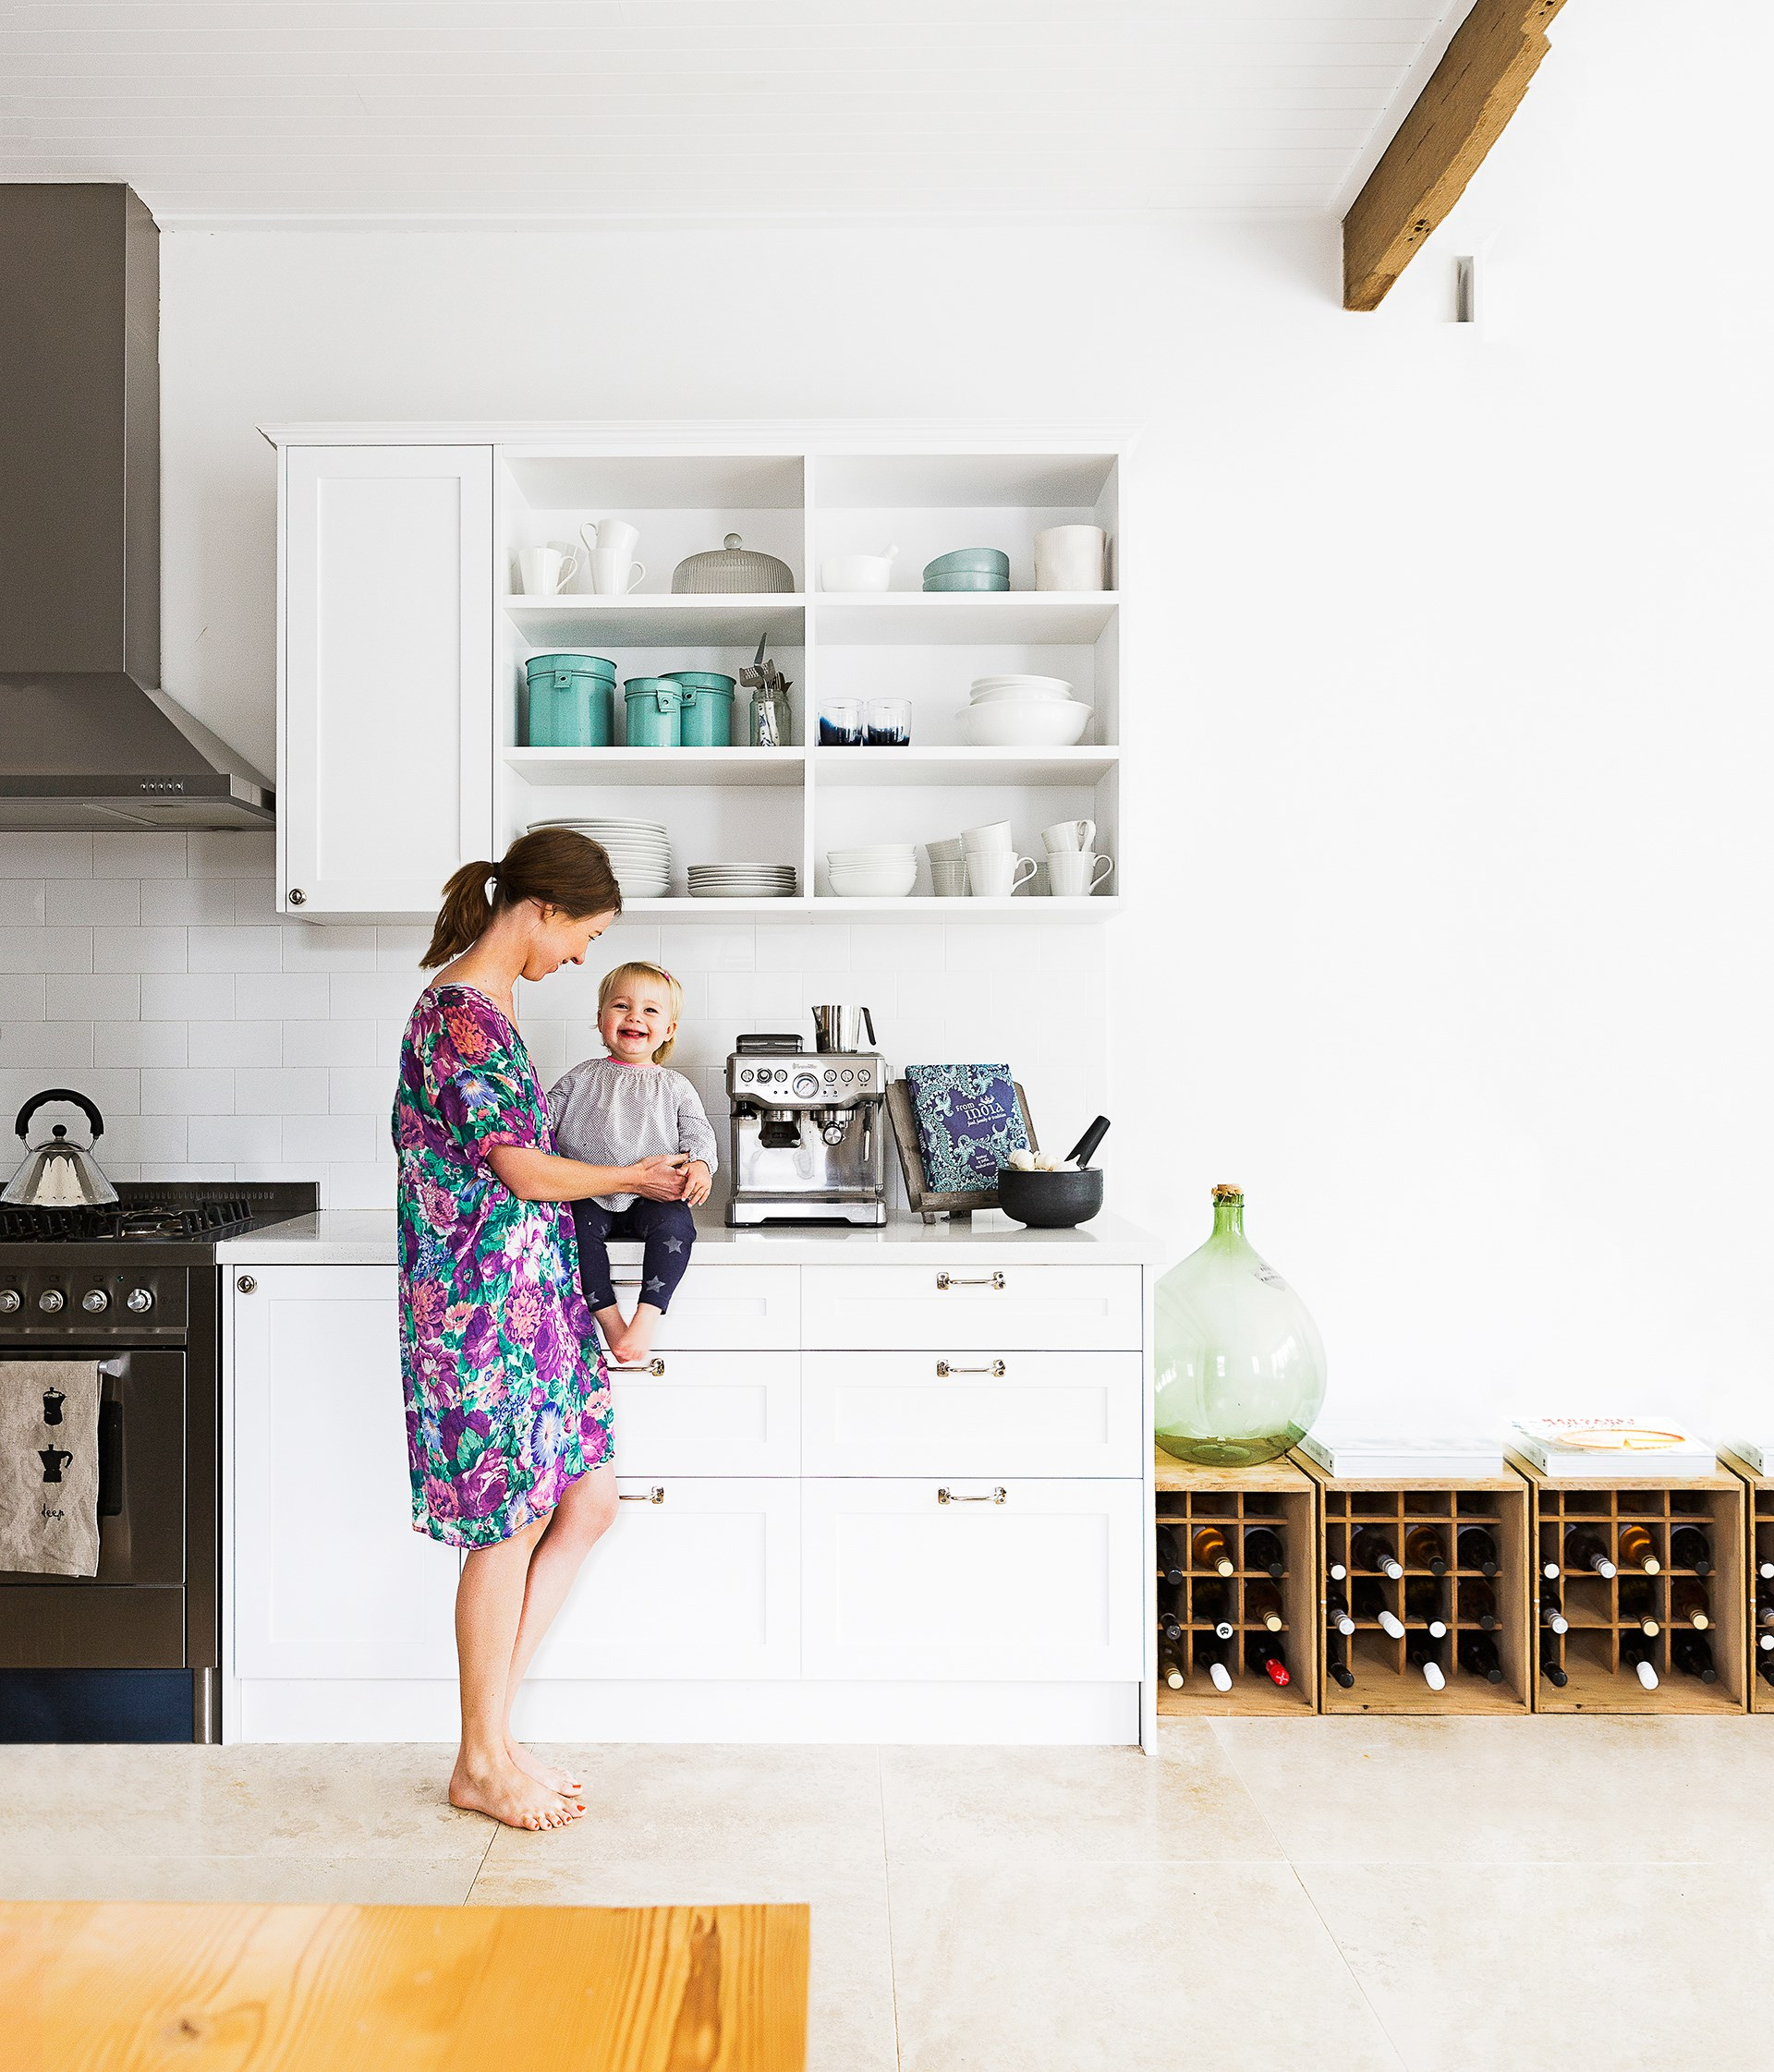 "Using teal kitchen tins and a large demijohn glass bottle, Cassie has created a vintage kitchen that delights two-year-old Maya. See more their [bright Inner West home](http://www.homestolove.com.au/cassie-and-tims-bright-inner-west-semi-2144/?utm_campaign=supplier/|target=""_blank""). Photo: Maree Homer / *homes+*"